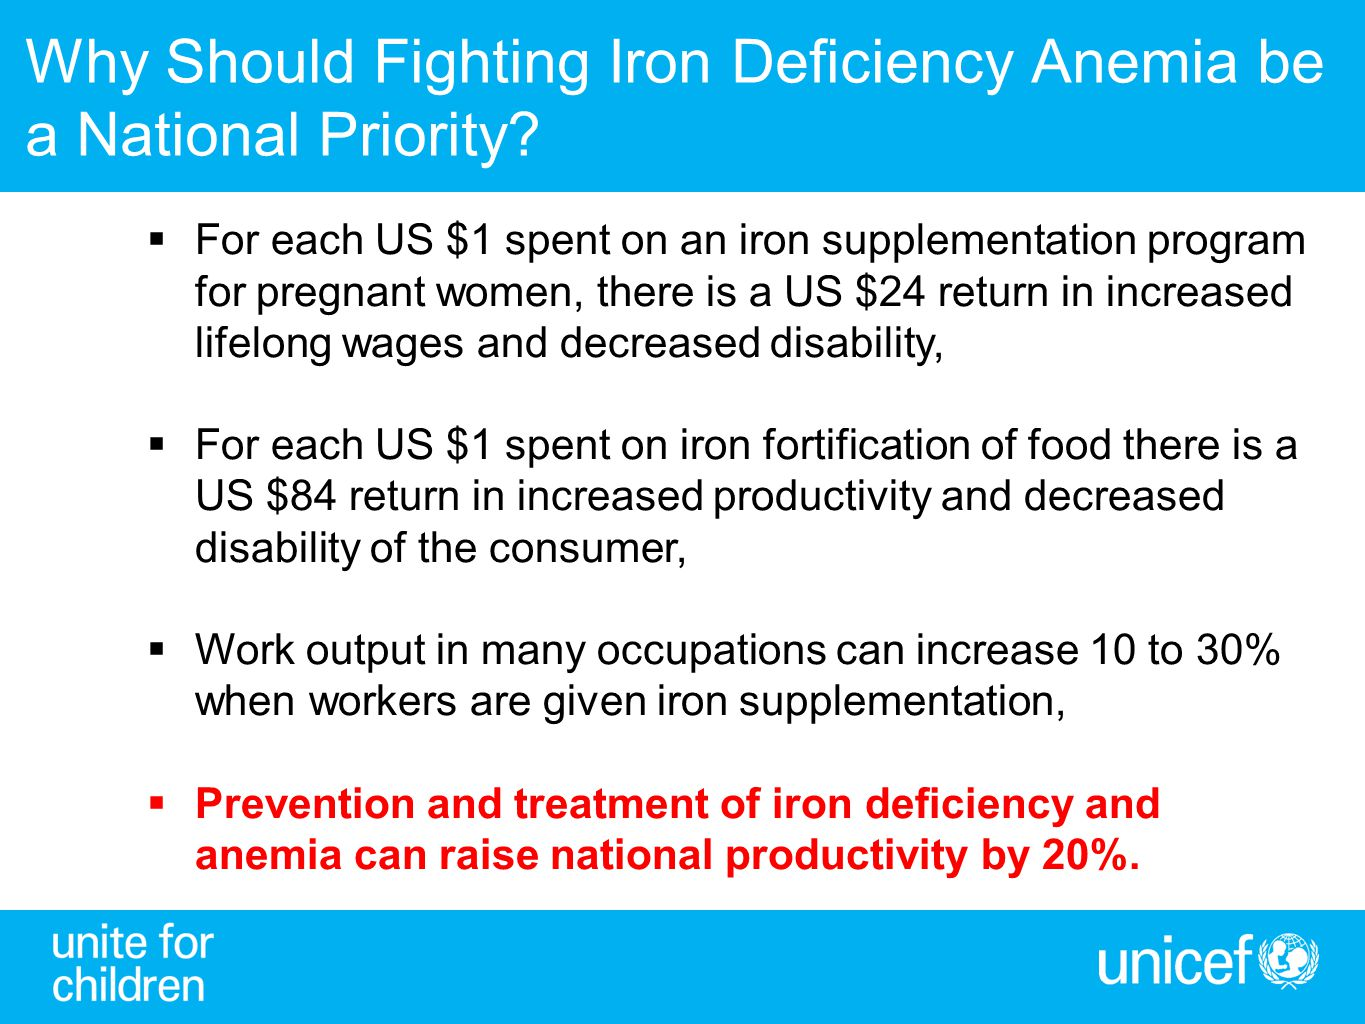 Why Should Fighting Iron Deficiency Anemia be a National Priority?  For each US $1 spent on an iron supplementation program for pregnant women, there